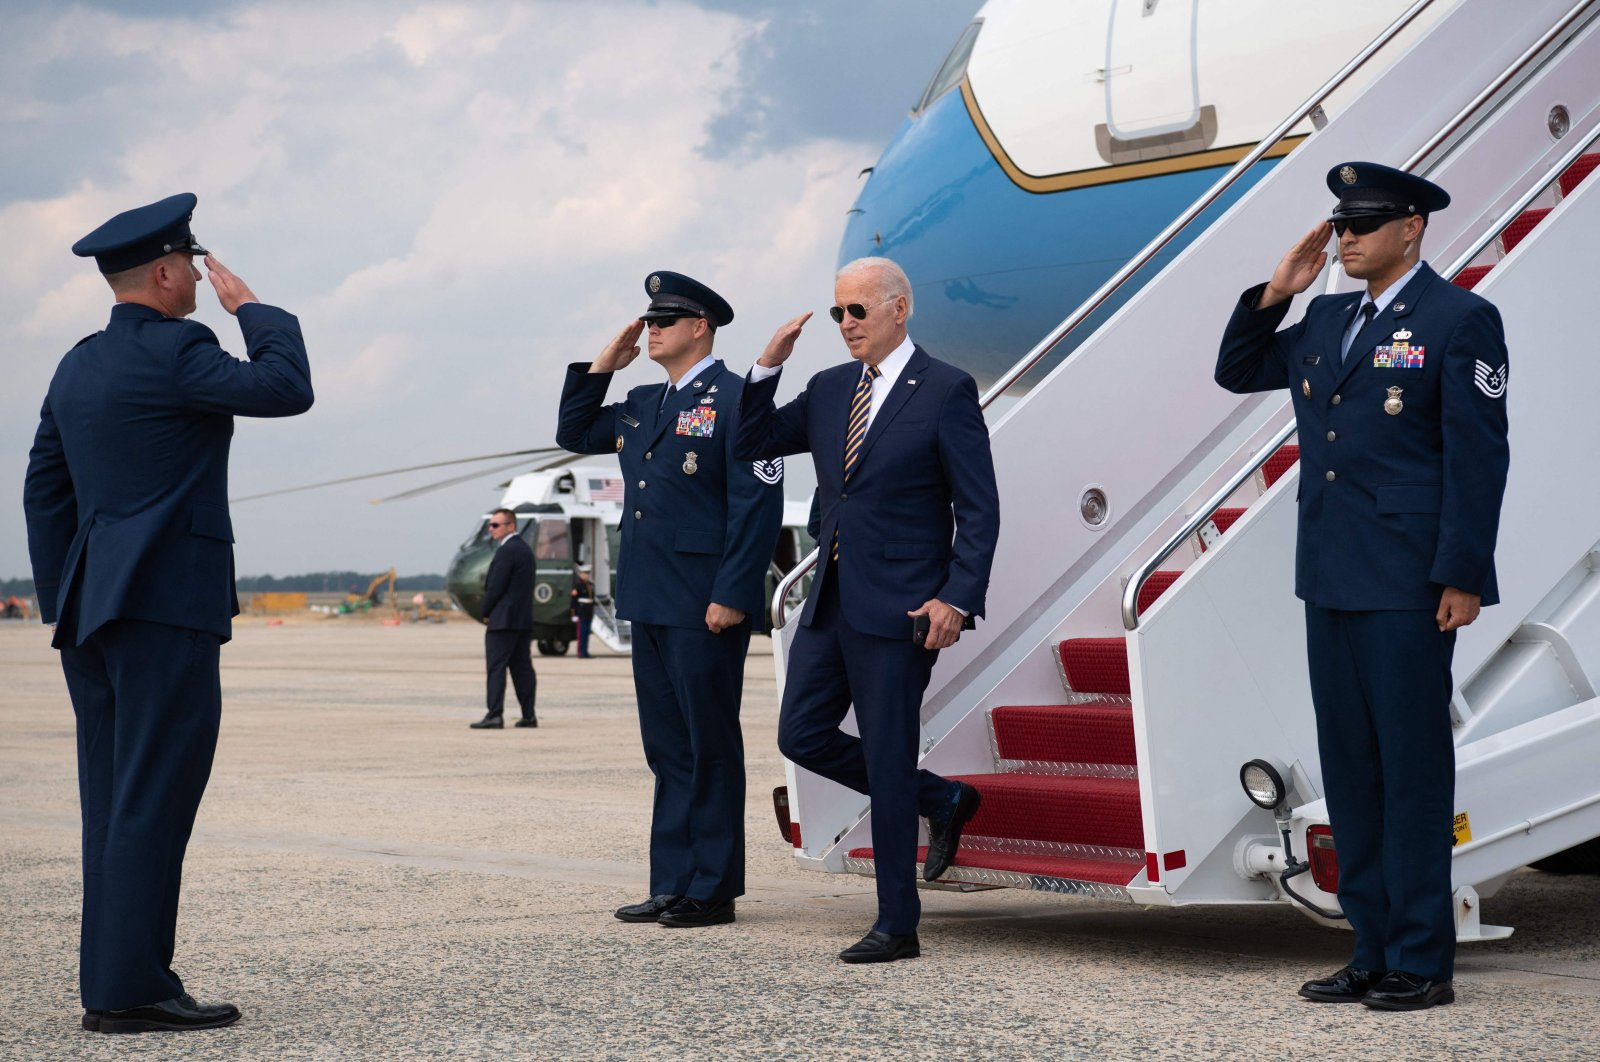 U.S. President Joe Biden disembarks from Air Force One upon arrival at Joint Base Andrews in Maryland, the U.S., July 28, 2021. (AFP Photo)